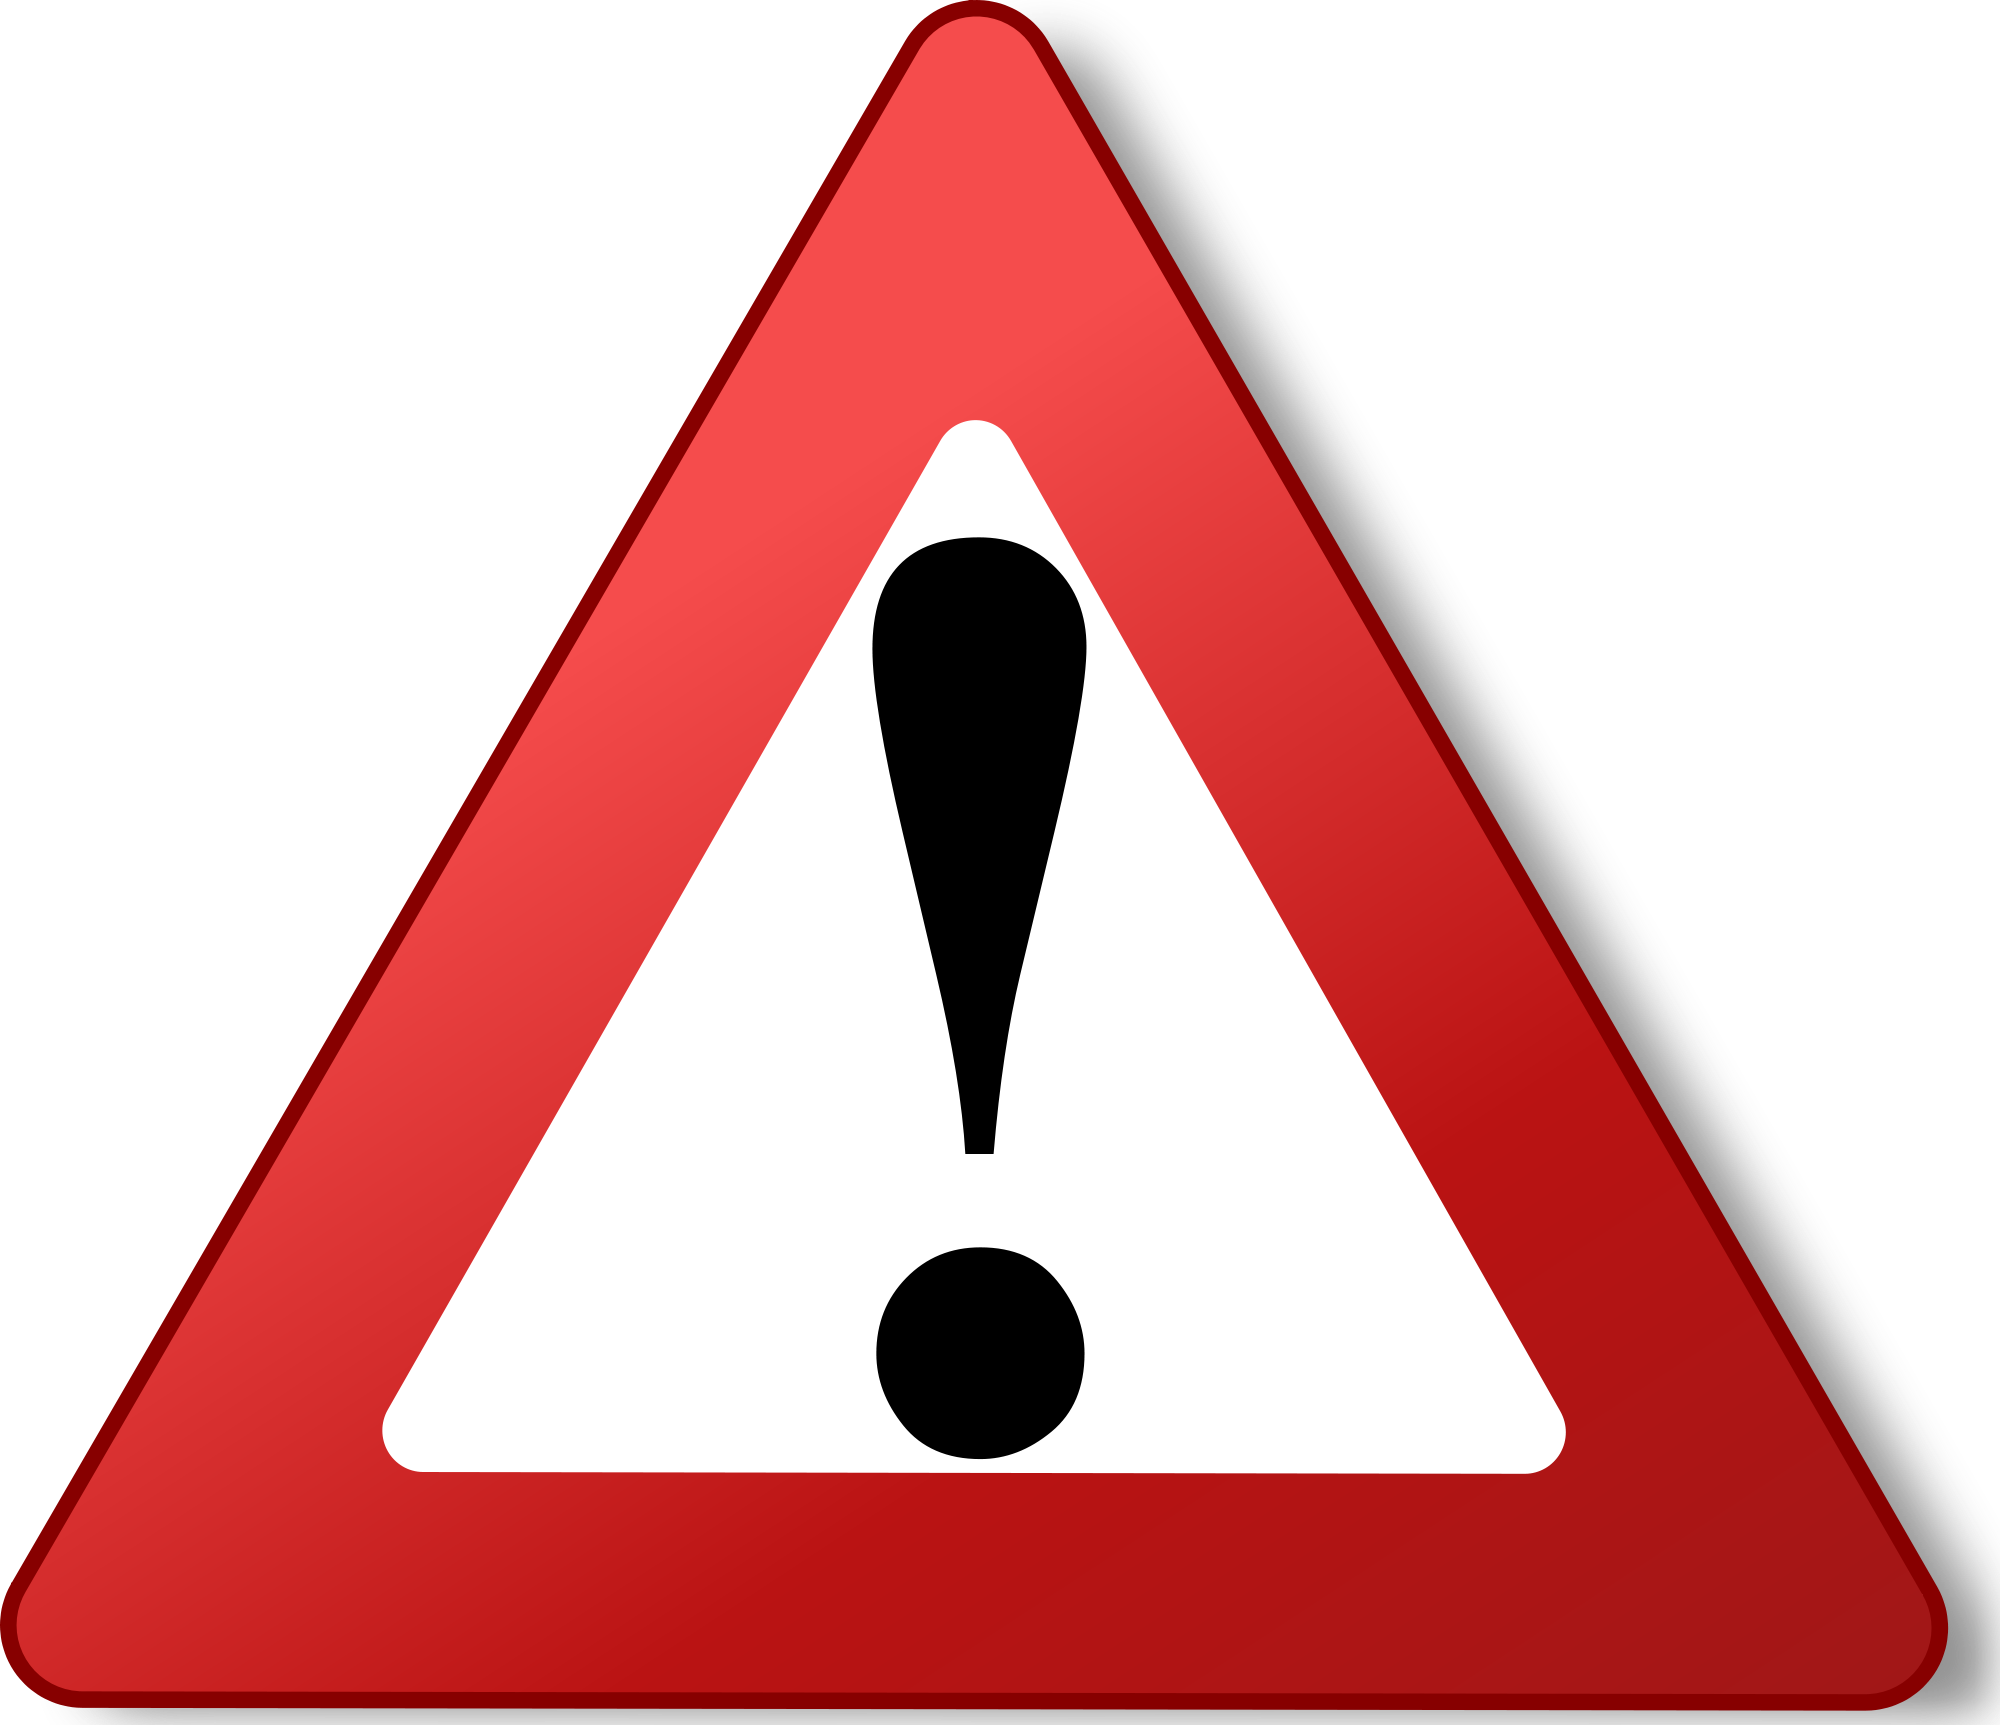 Triangular clipart teaching. Warning triangle red reflections